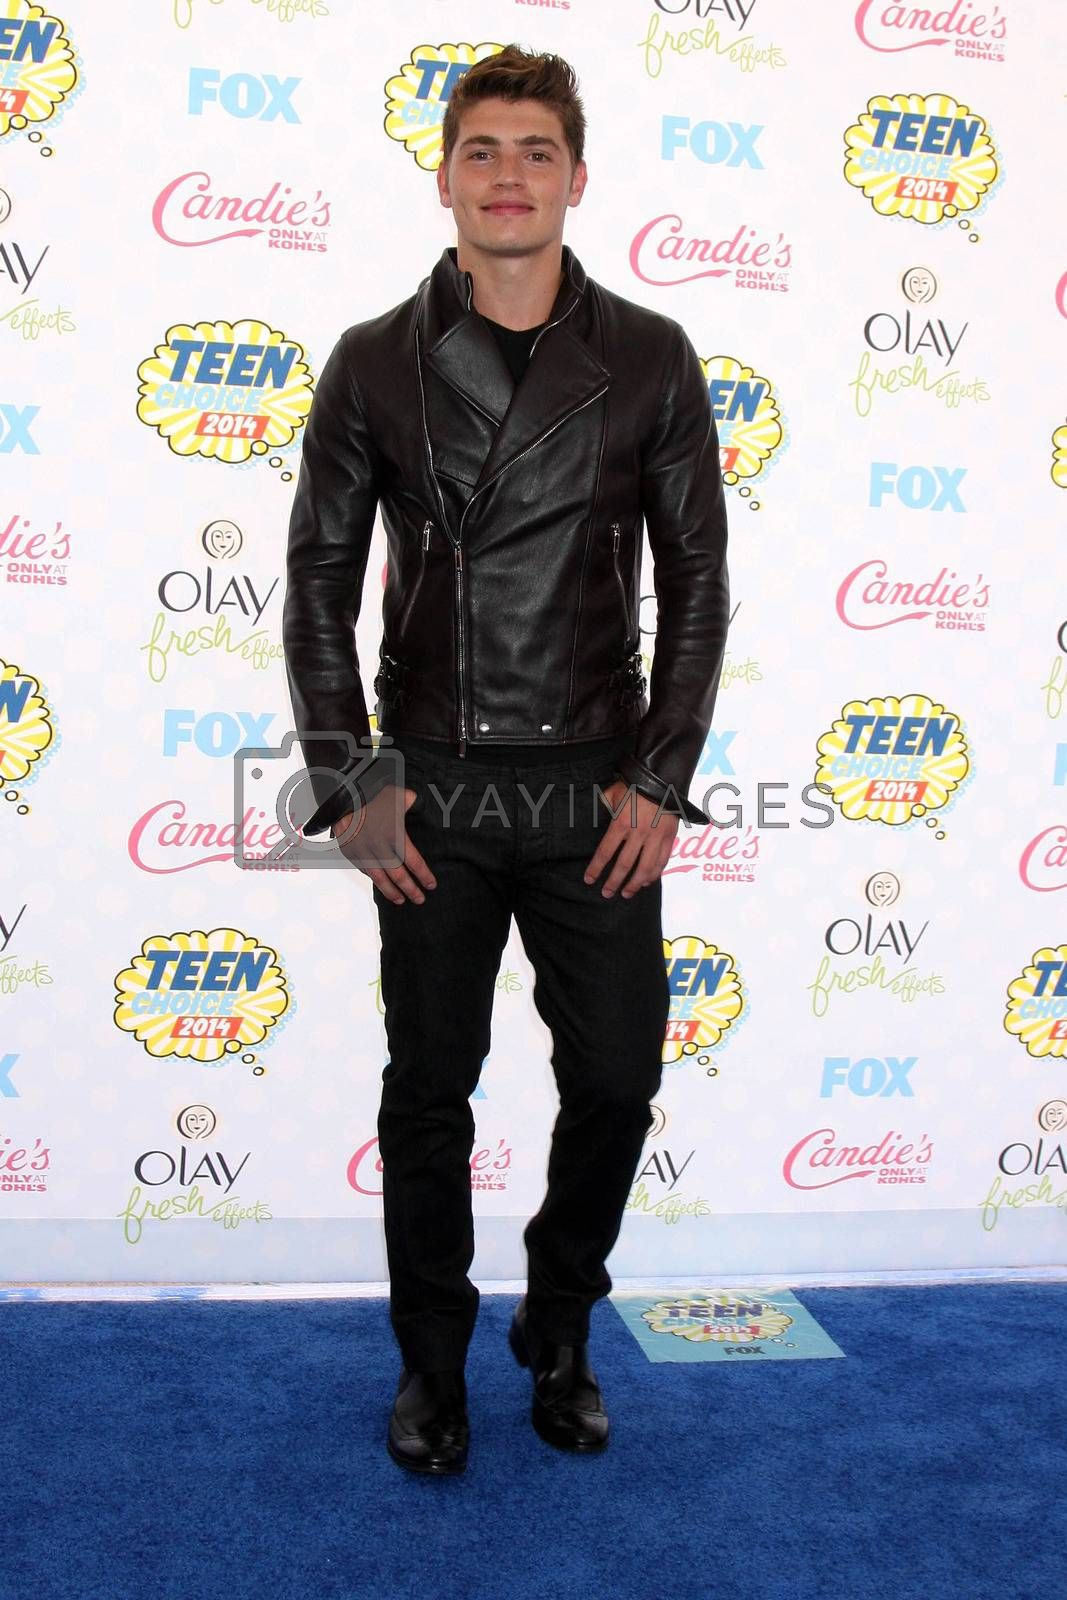 Royalty free image of Gregg Sulkin at the 2014 Teen Choice Awards Arrivals, Shrine Auditorium, Los Angeles, CA 08-10-14/ImageCollect by ImageCollect